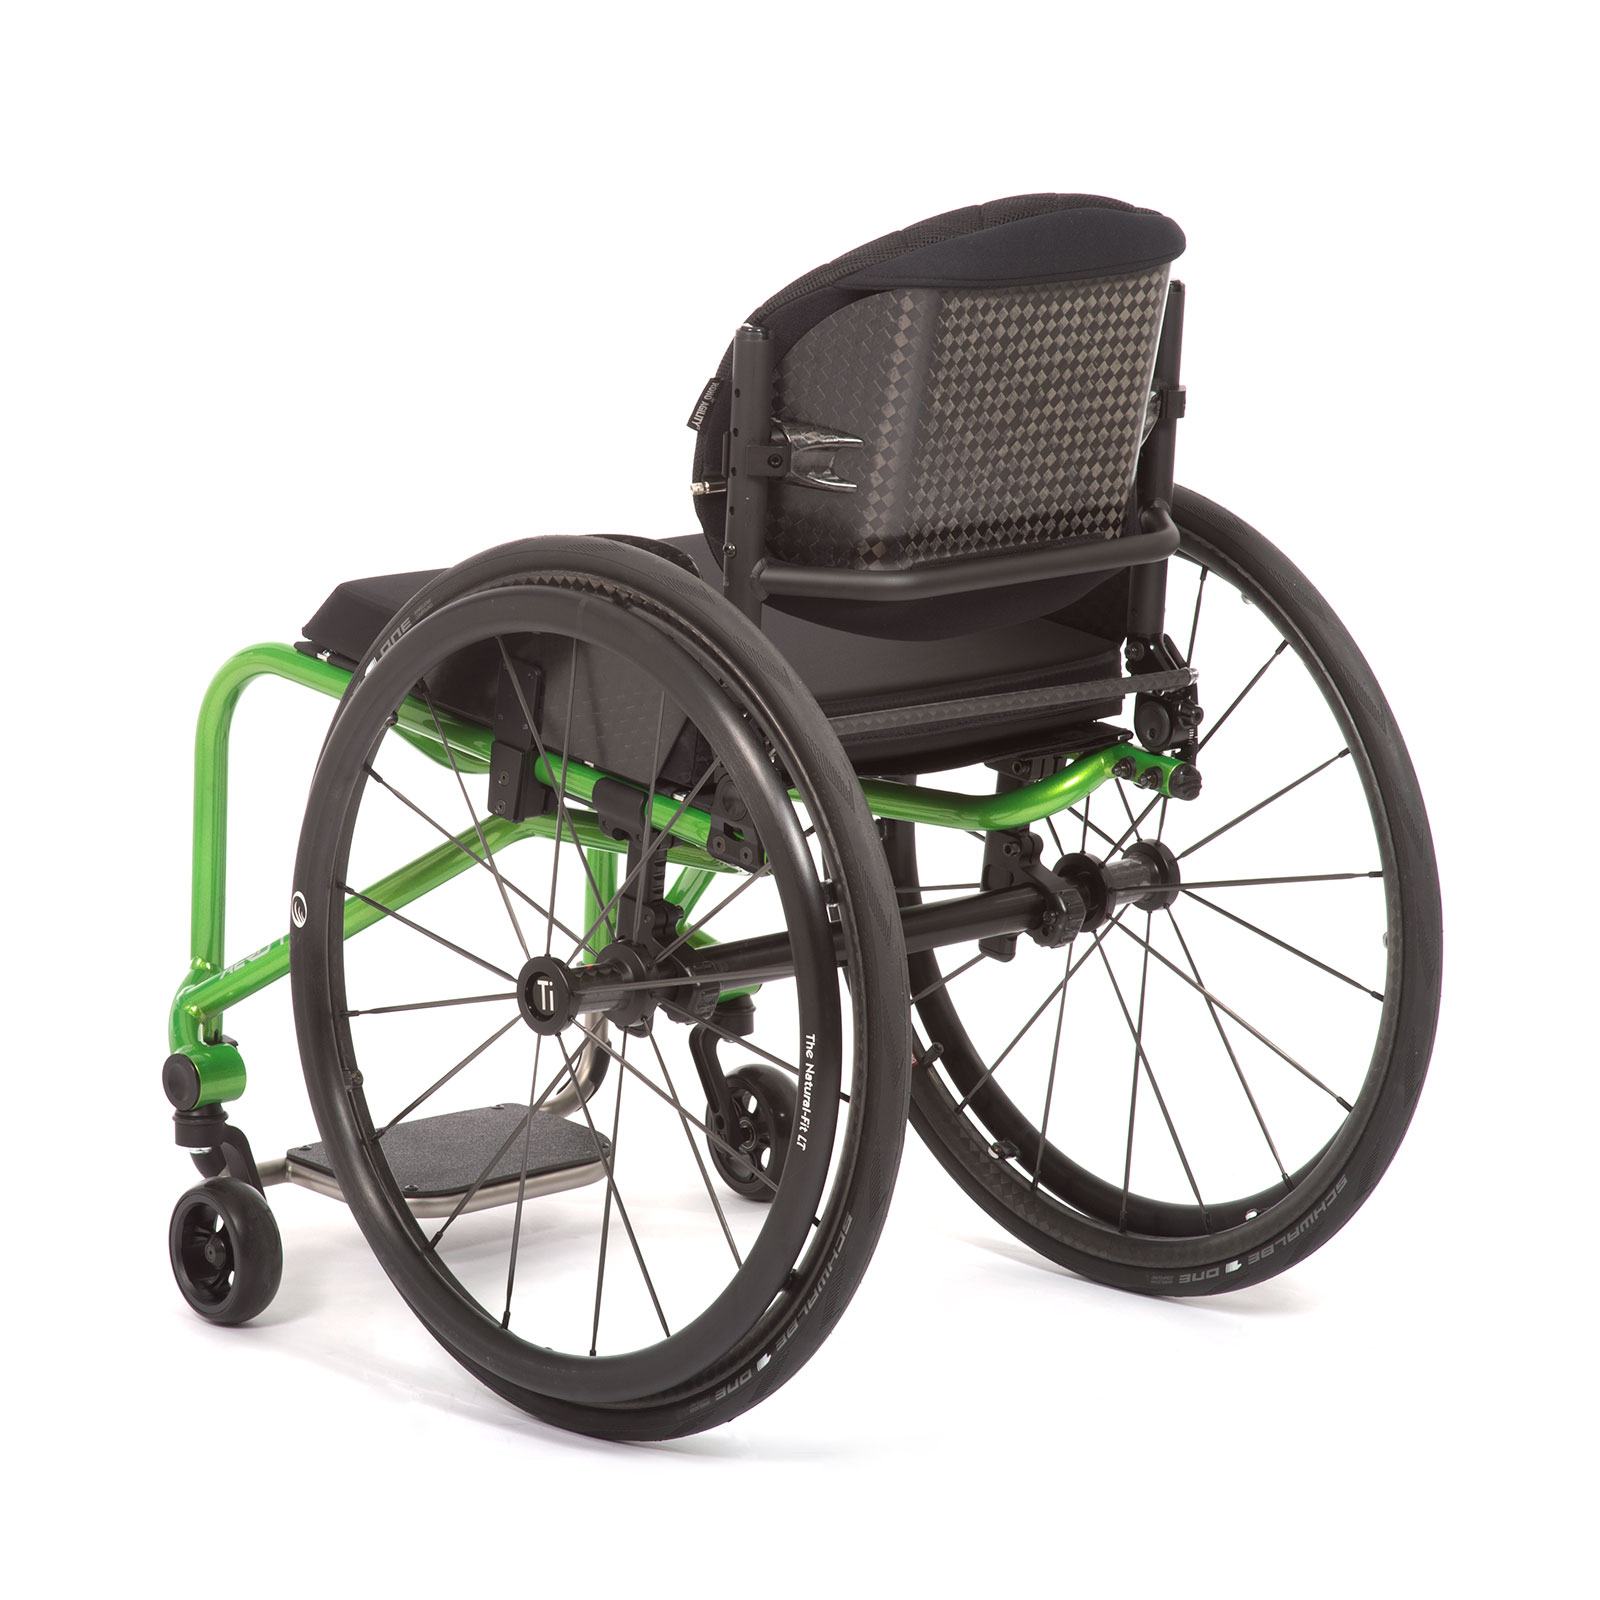 The Back Left acid green of the Wheelchair